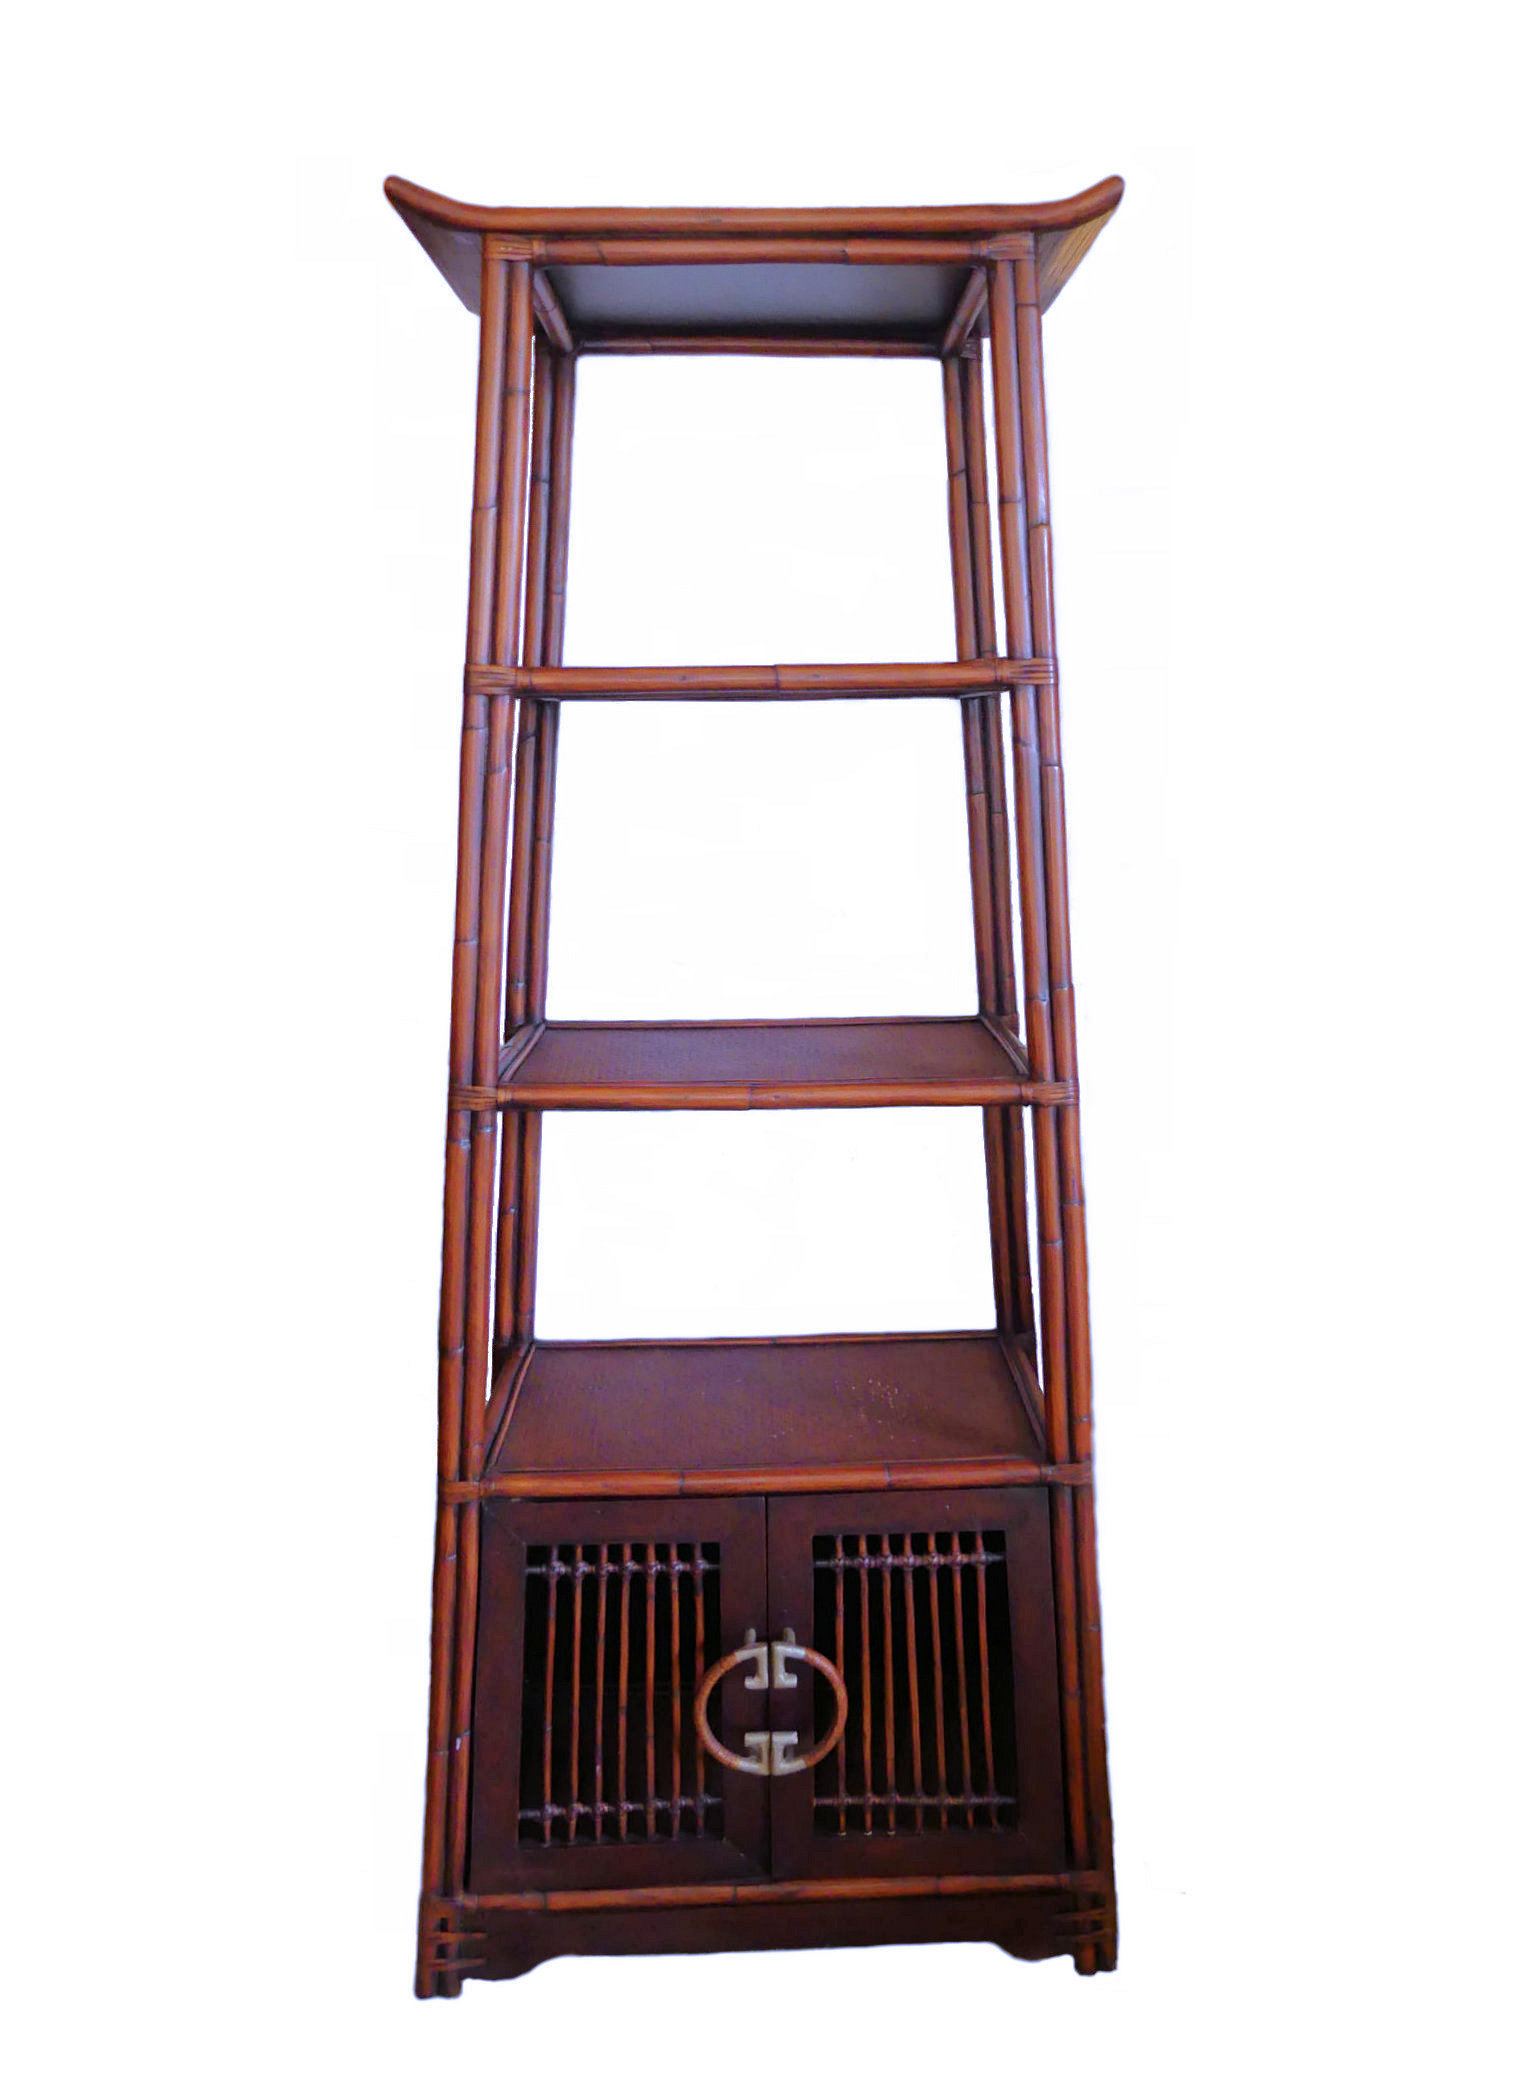 SOLD Palecek Asian Ming Style Bamboo & Rattan Etagere